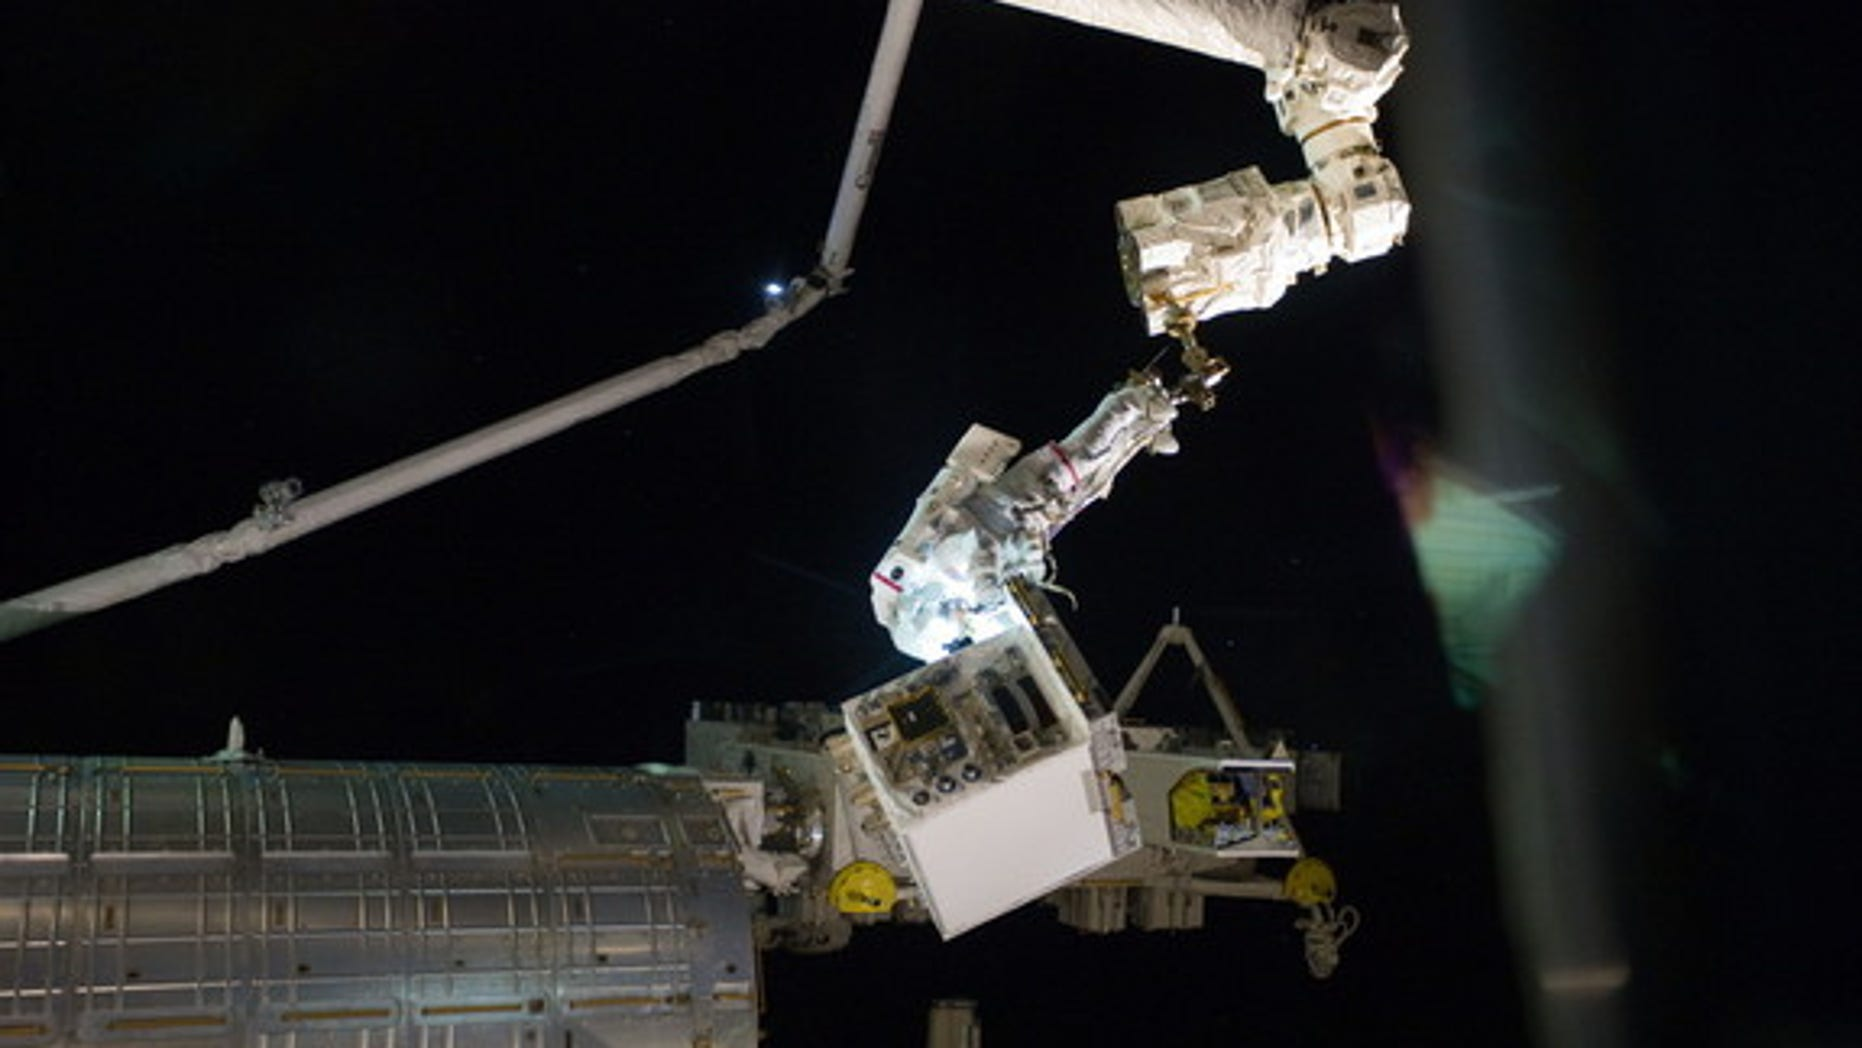 With his feet secured on a restraint on the space station's Canadarm2, NASA astronaut Mike Fossum holds the Robotics Refueling Mission payload, which was the focus of one of the primary chores accomplished on a six and a half hour spacewalk on